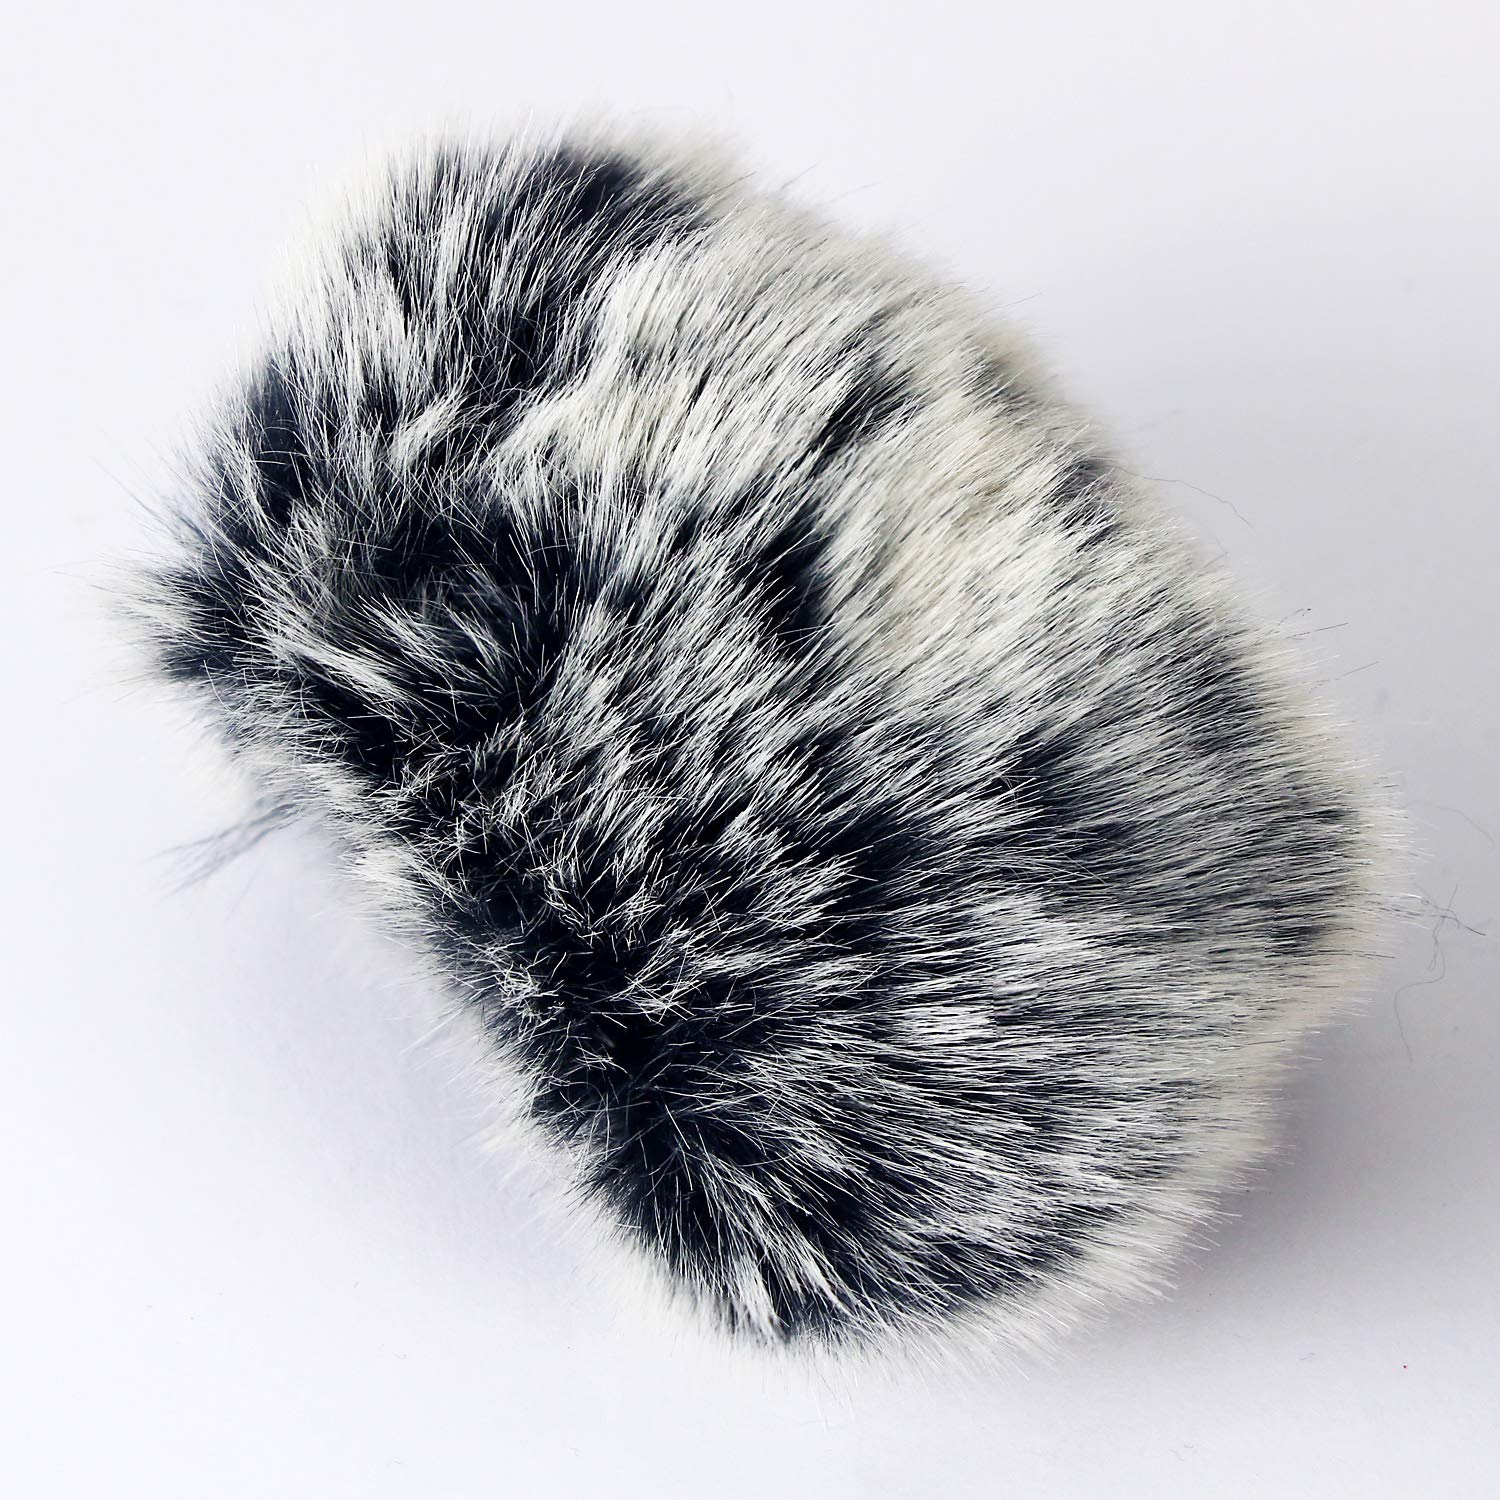 DR07X Mic Windscreen Artificial Fur Wind Muff by YOUSHARES DR07X Windscreen Muff for Tascam DR-07X DR-07MKII Portable Digital Recorders